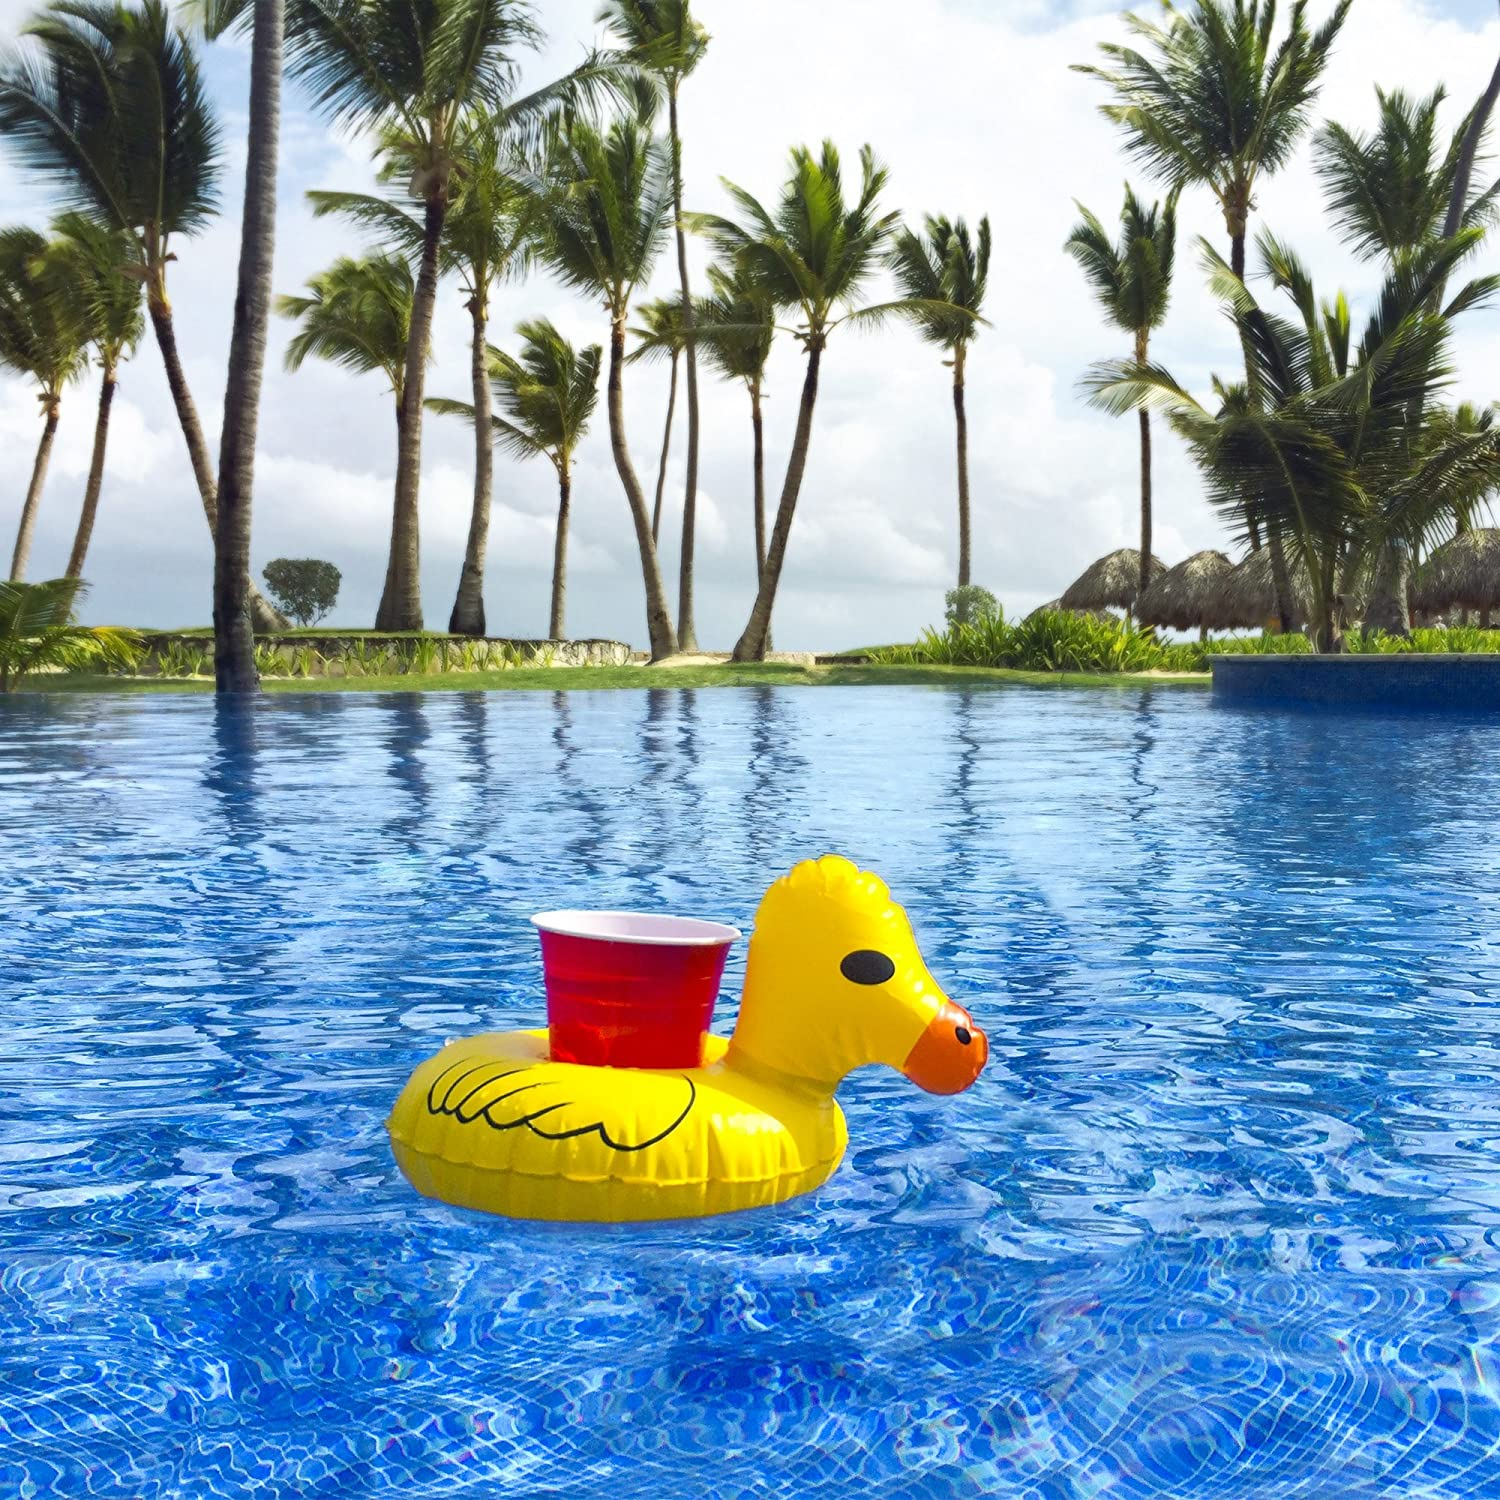 Amazon gofloats inflatable duck drink holder 3 pack float amazon gofloats inflatable duck drink holder 3 pack float your drinks in style toys games solutioingenieria Choice Image